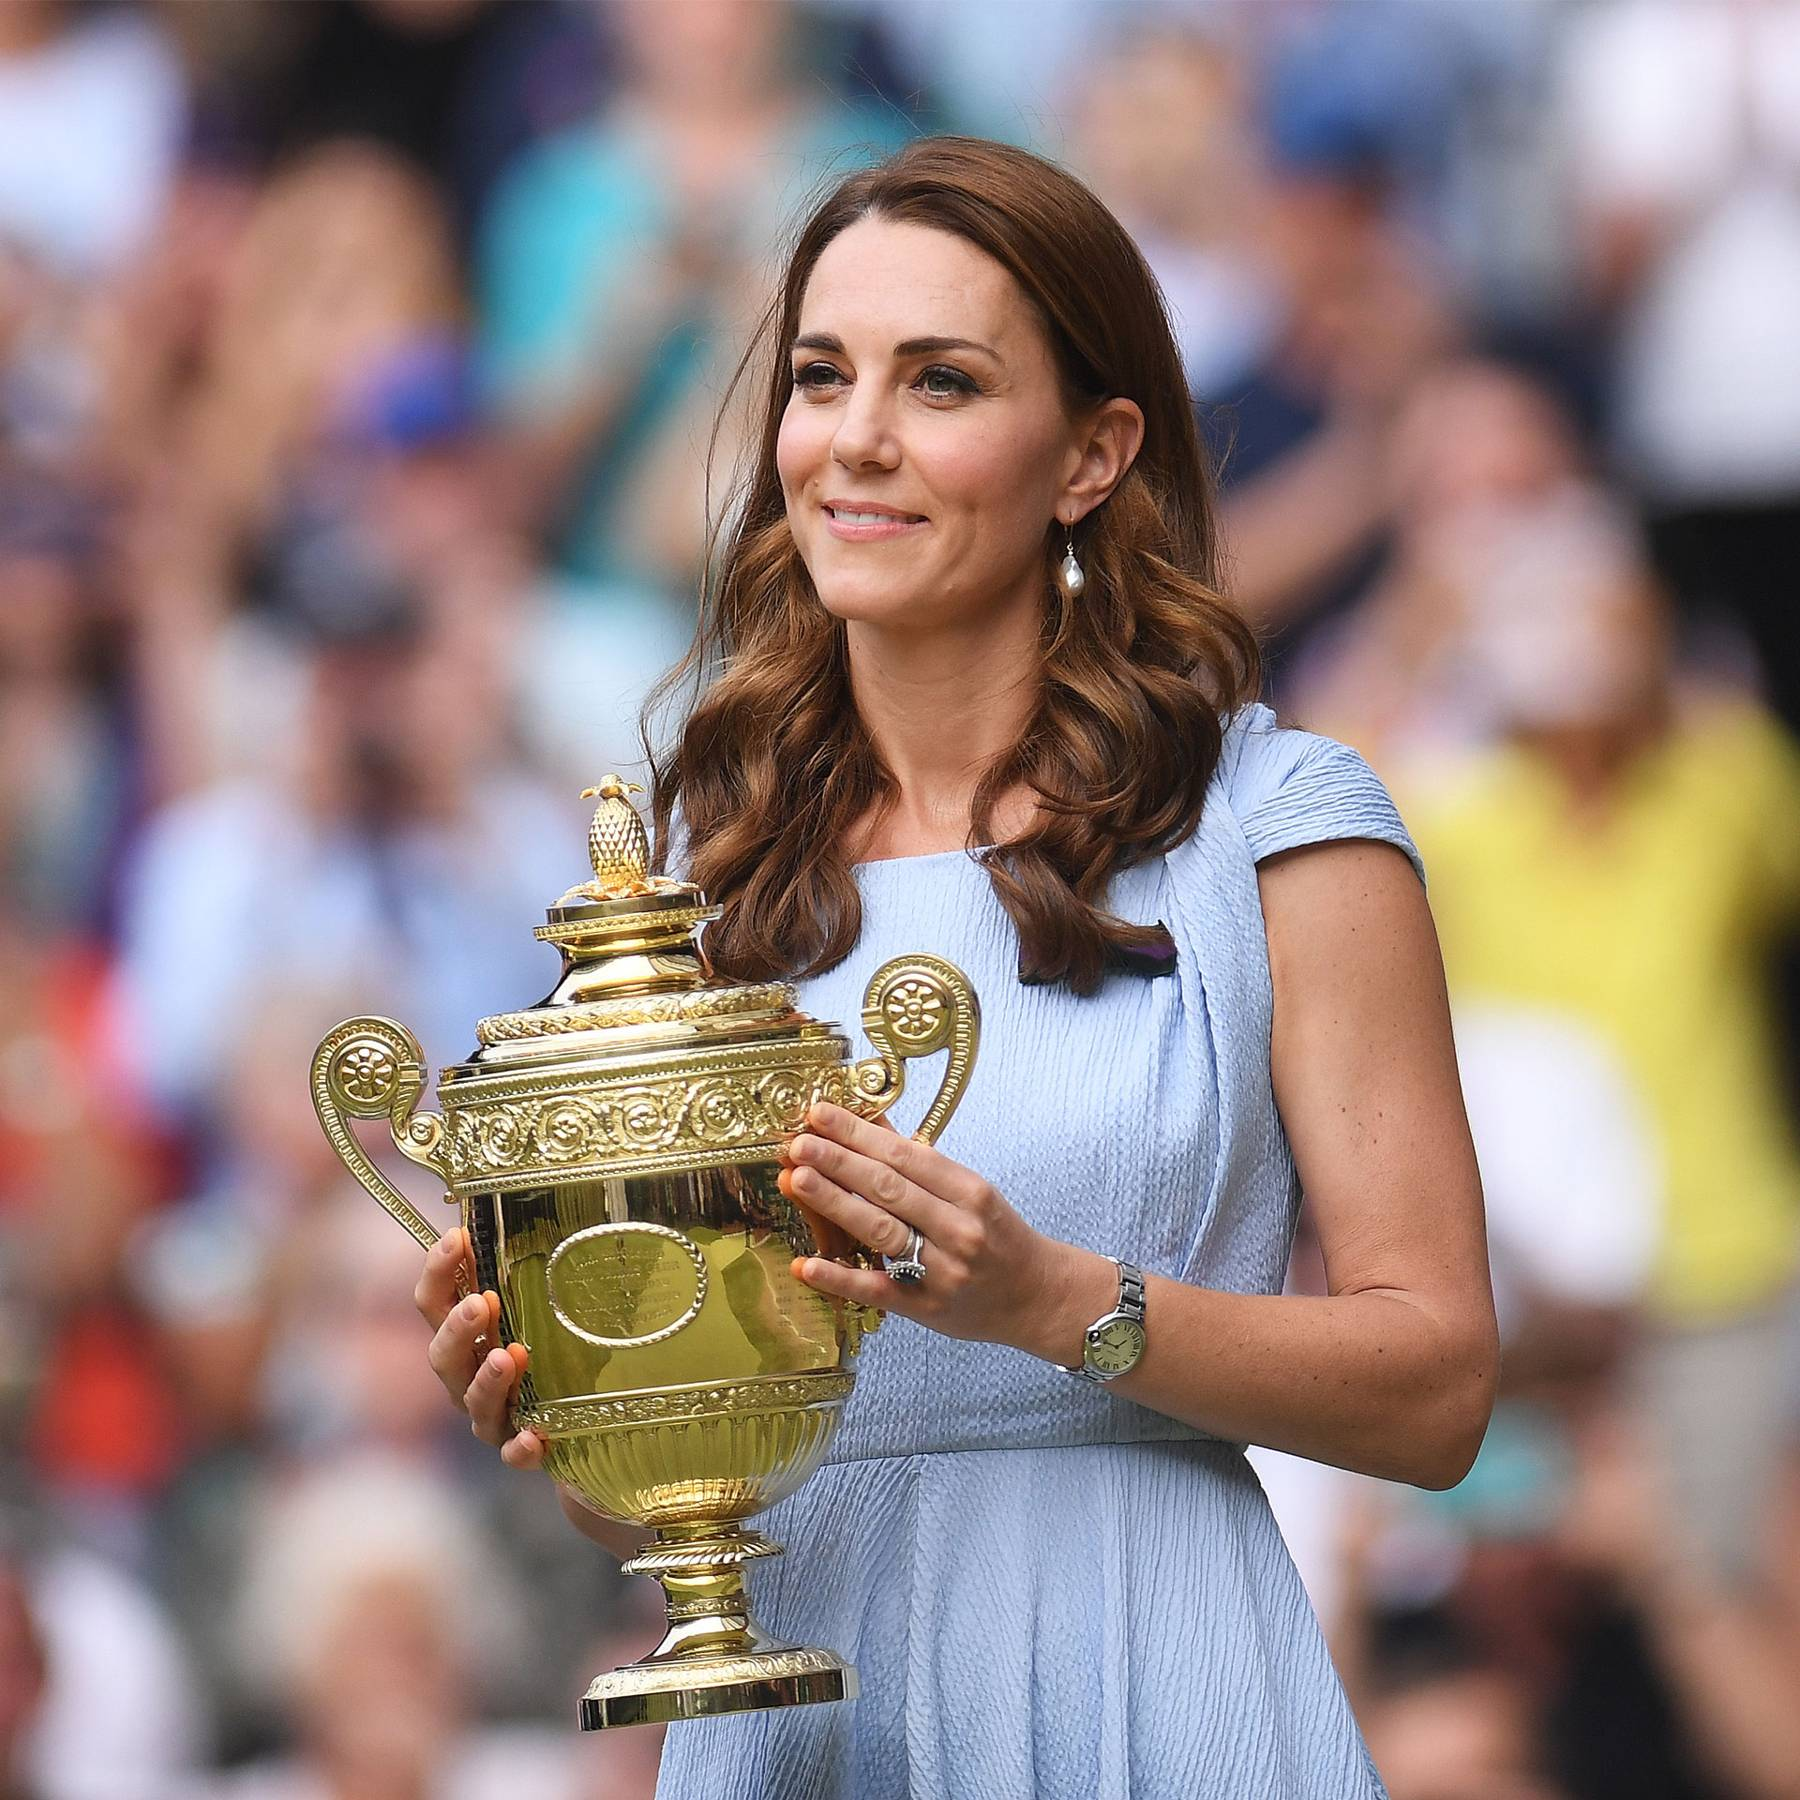 Wimbledon 2021 Guide: Tennis, Tickets, and What to Wear